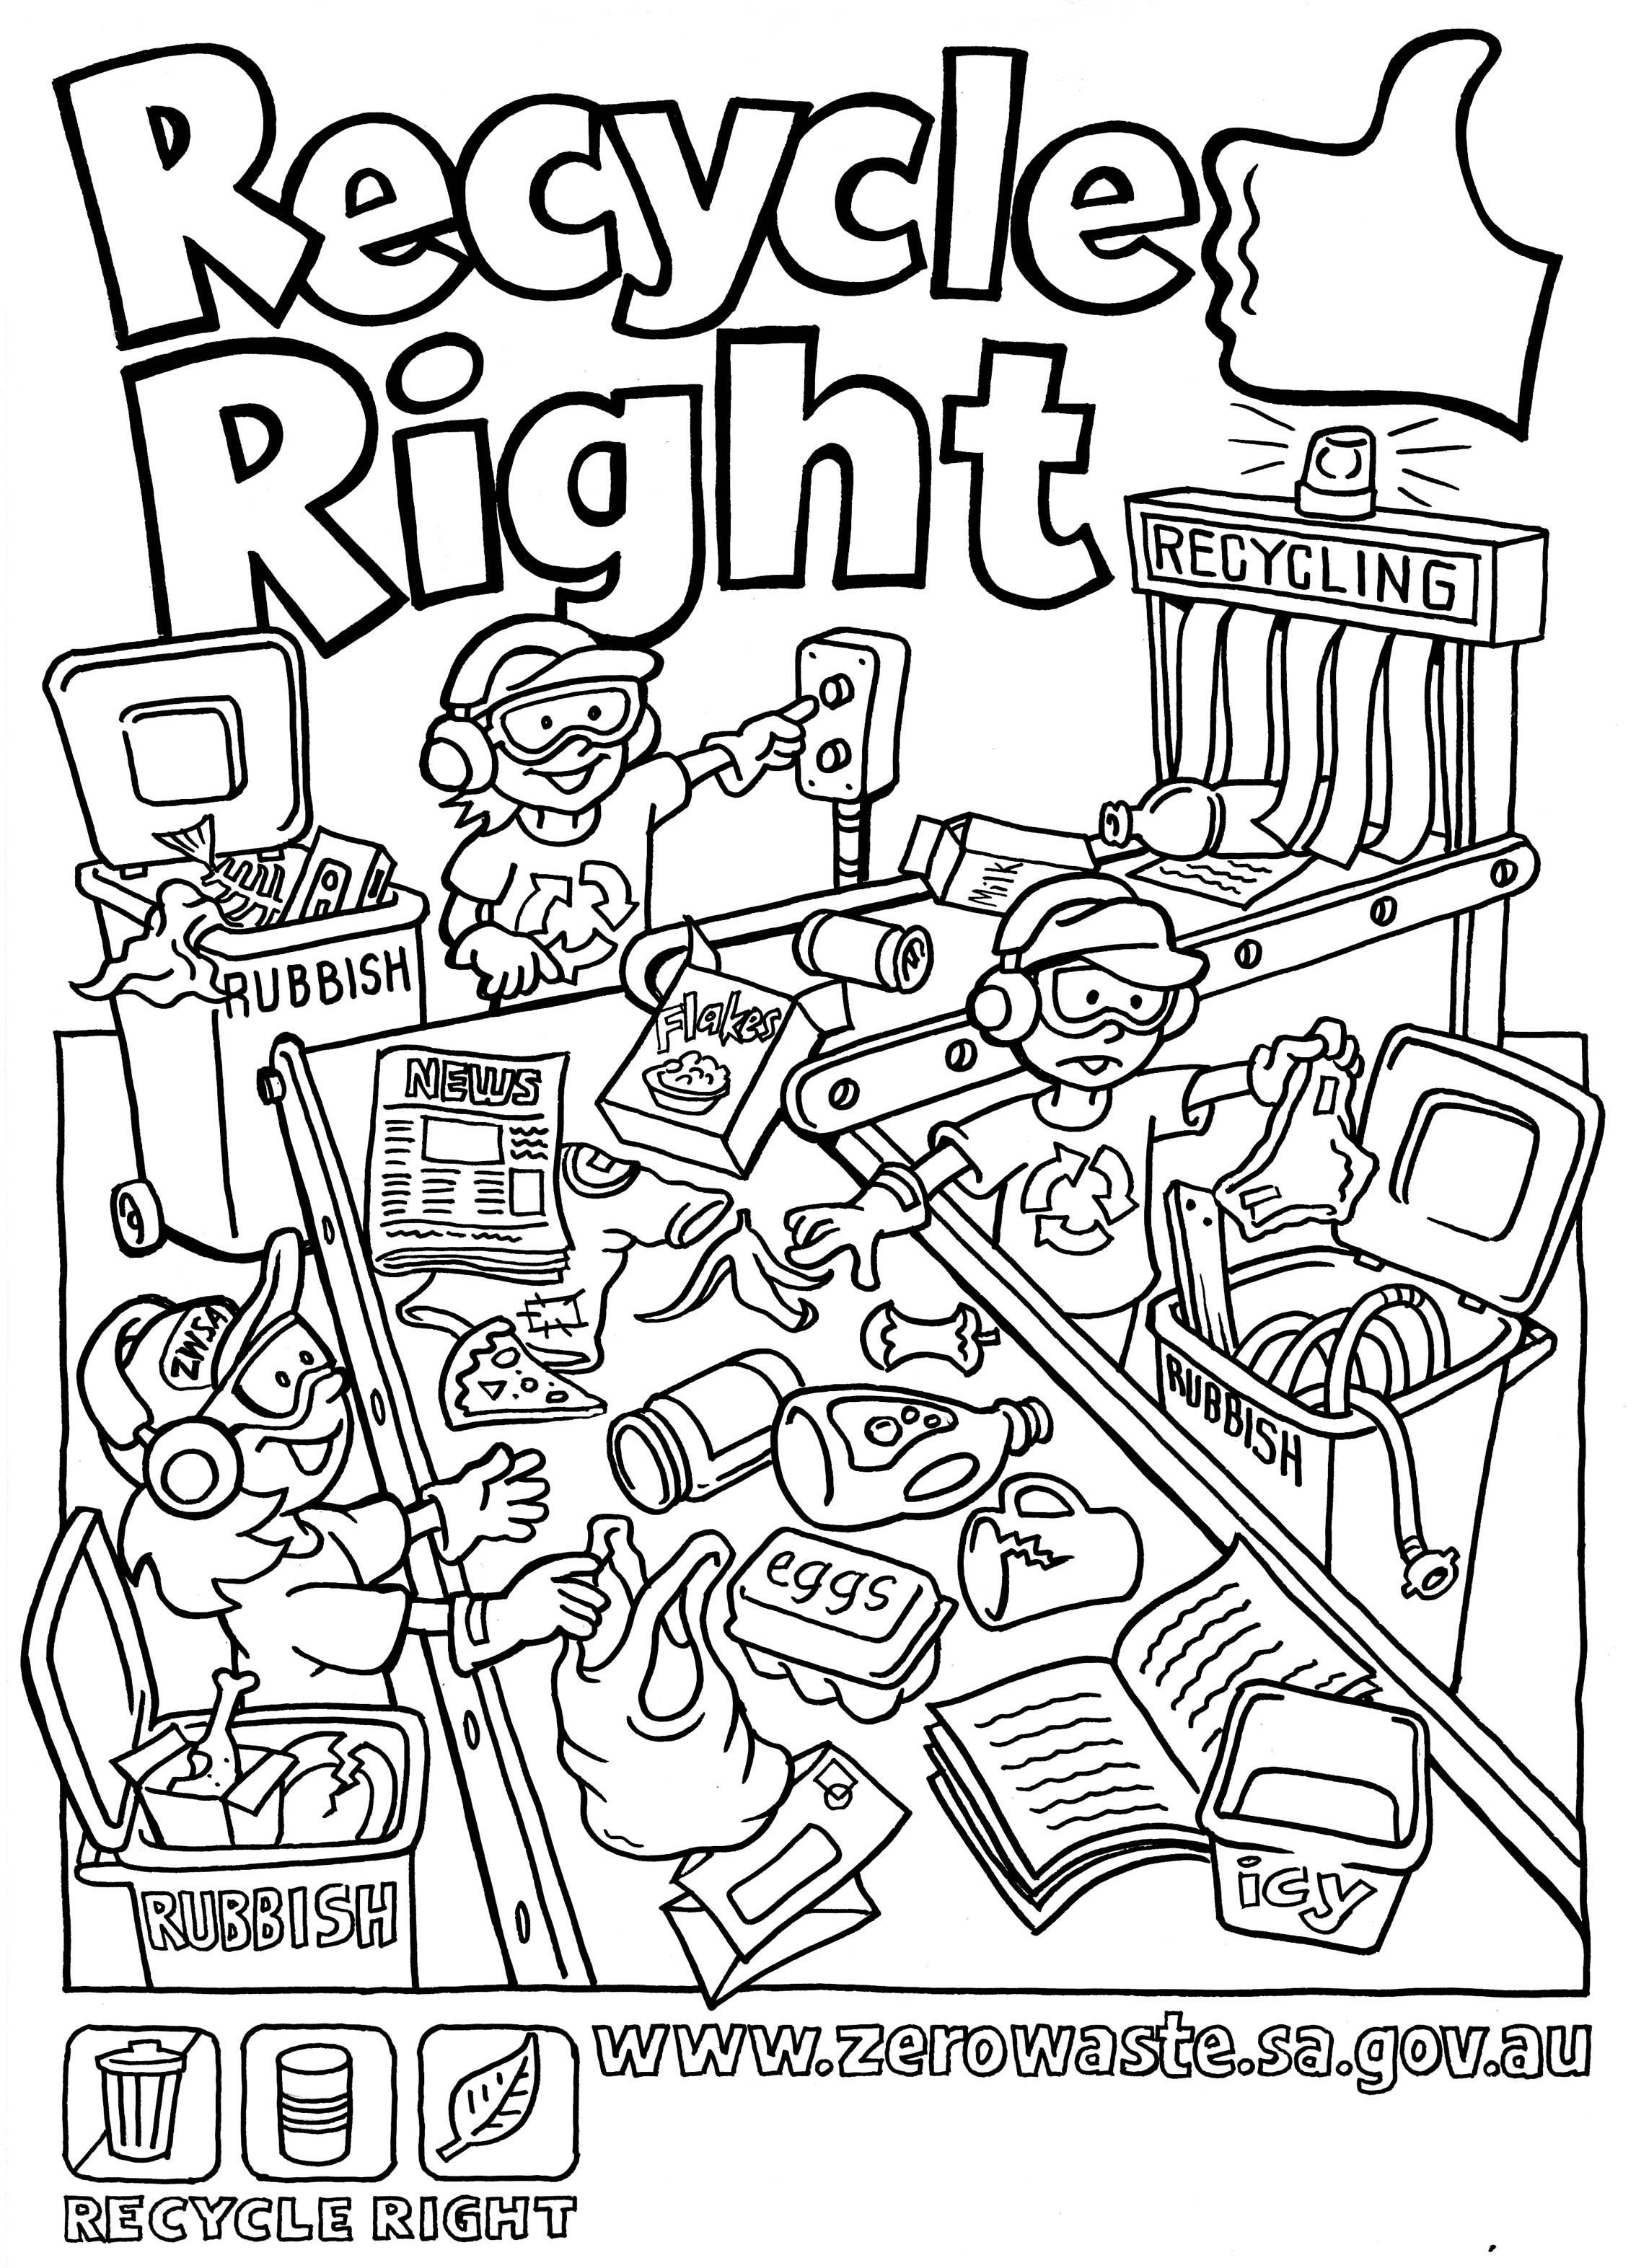 Recycling Coloring Pages For Kids Az Coloring Pages Coloring